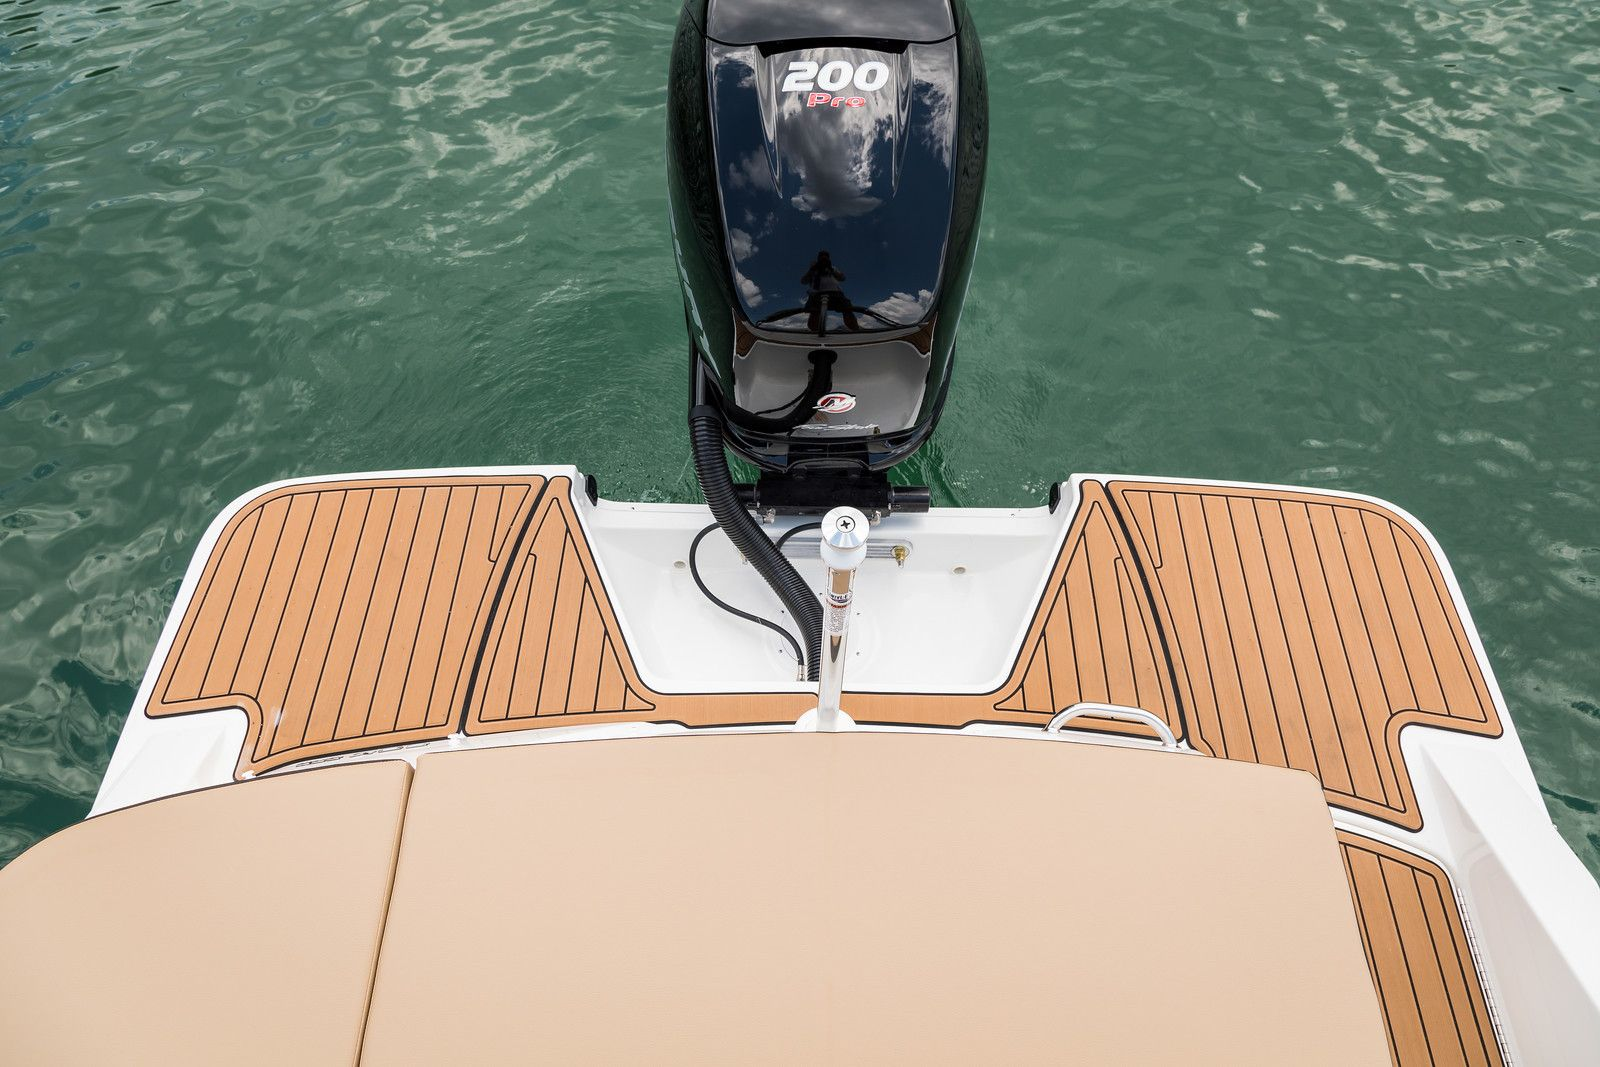 Sea Ray SPX series SPX 230 Outboard U.S.A.